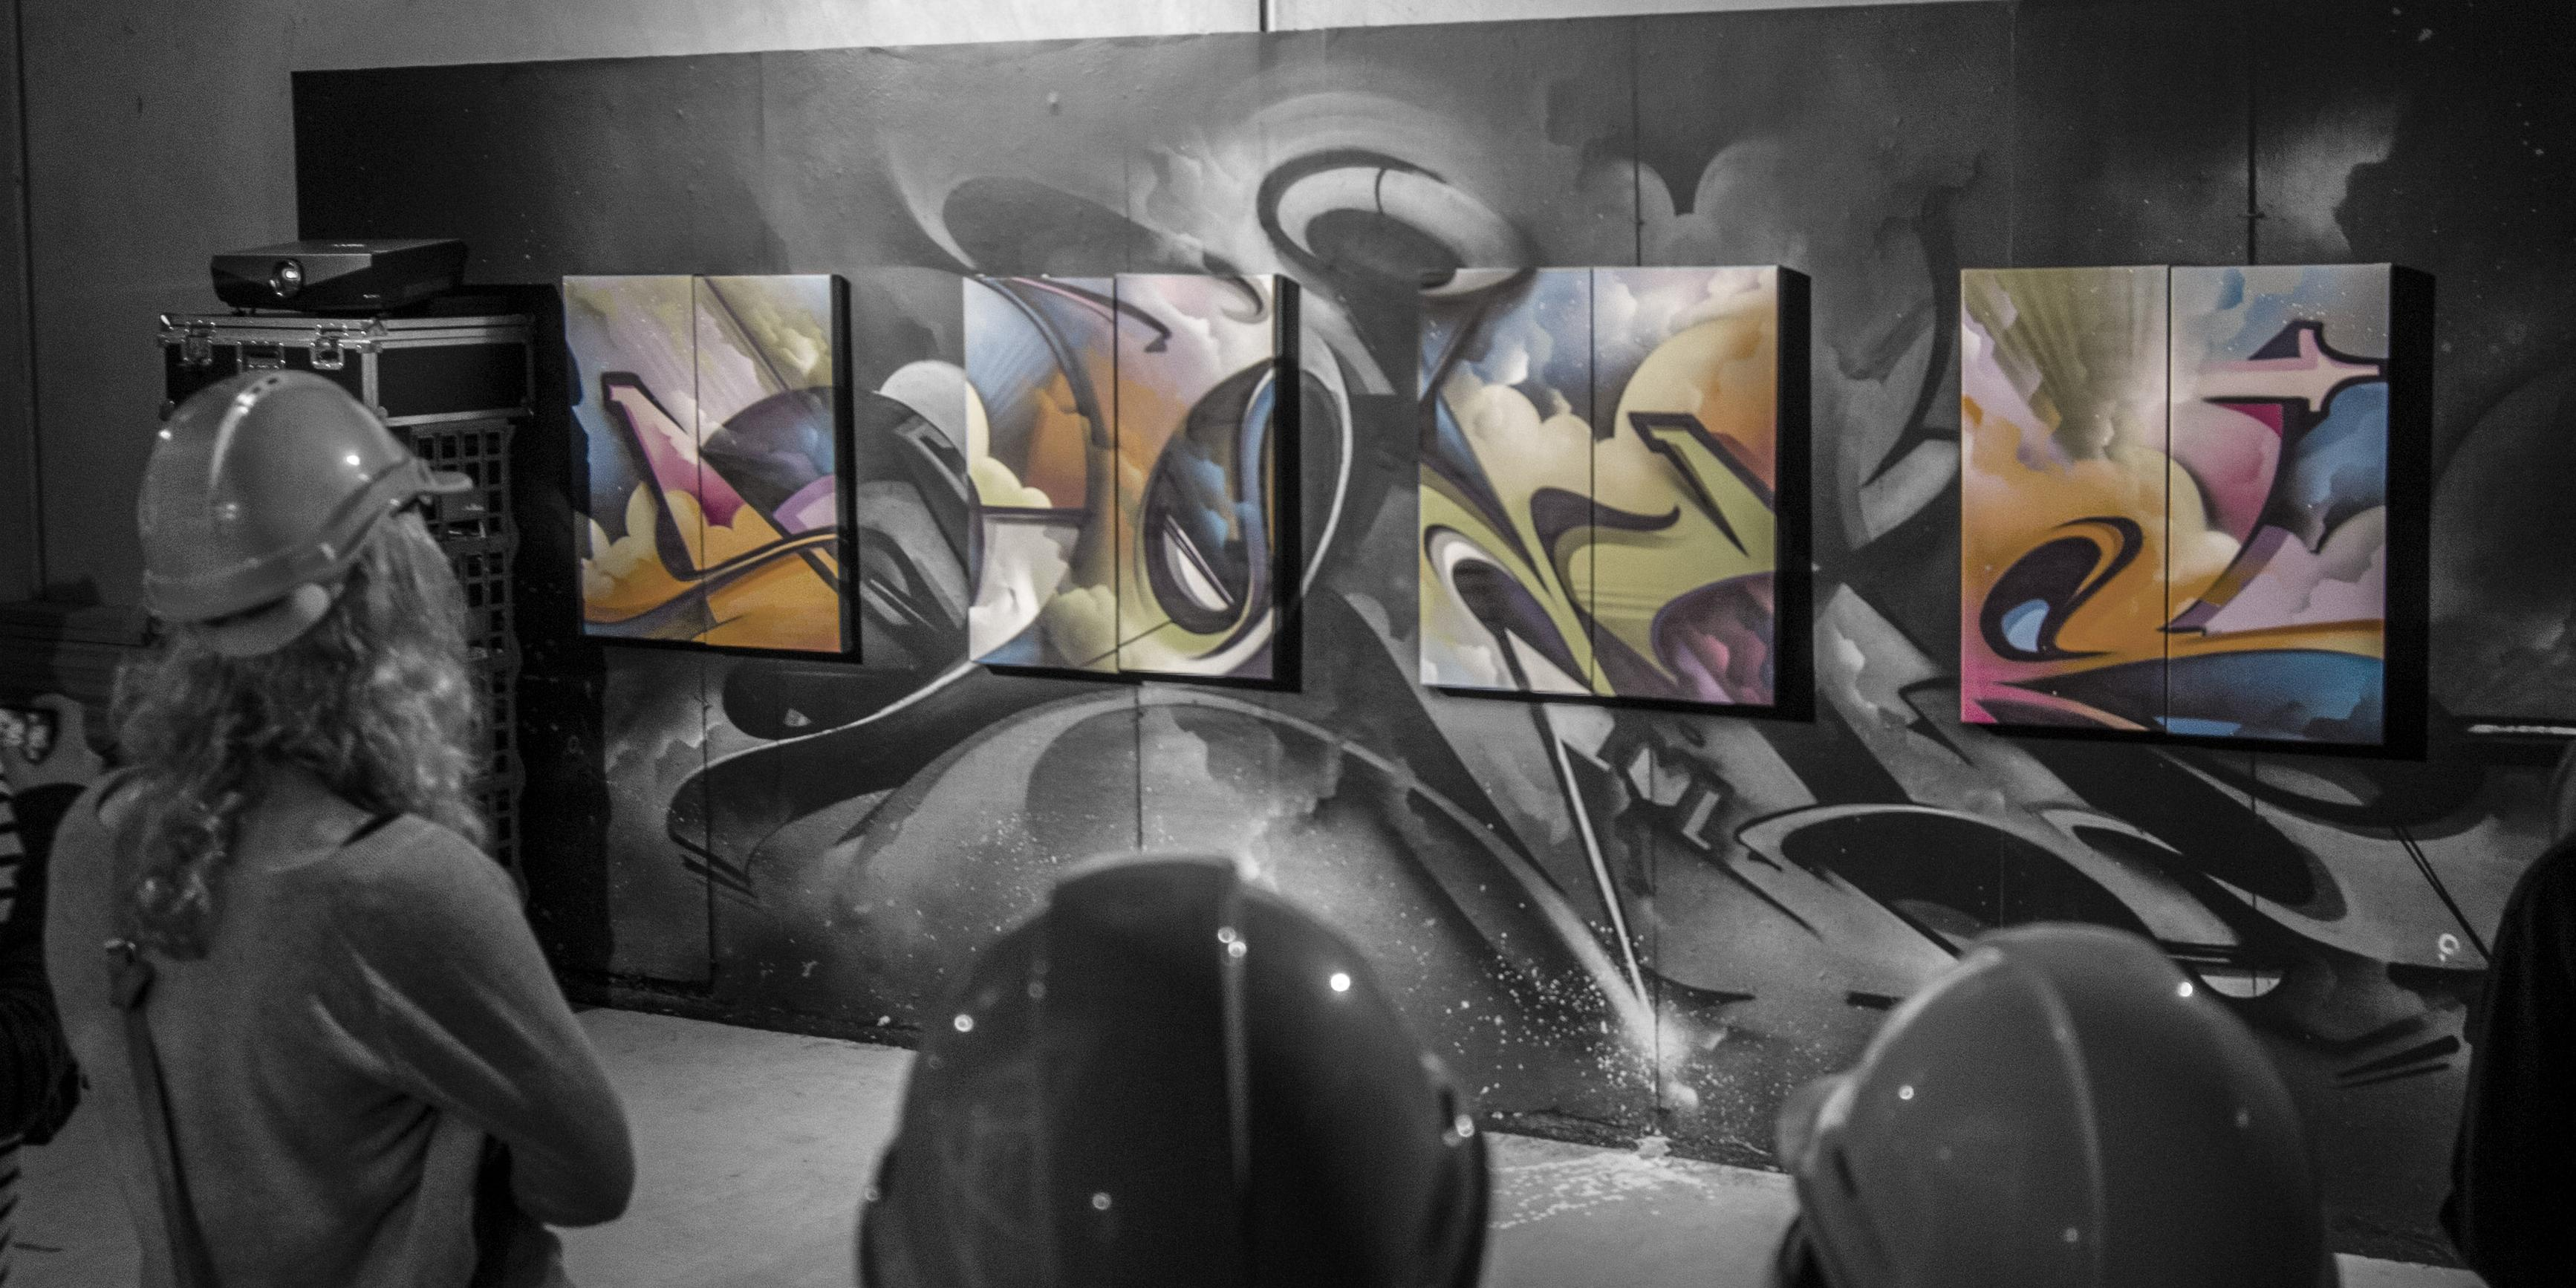 A work by Does - Endless Perspectives opening night melbourne australia london canvas 1